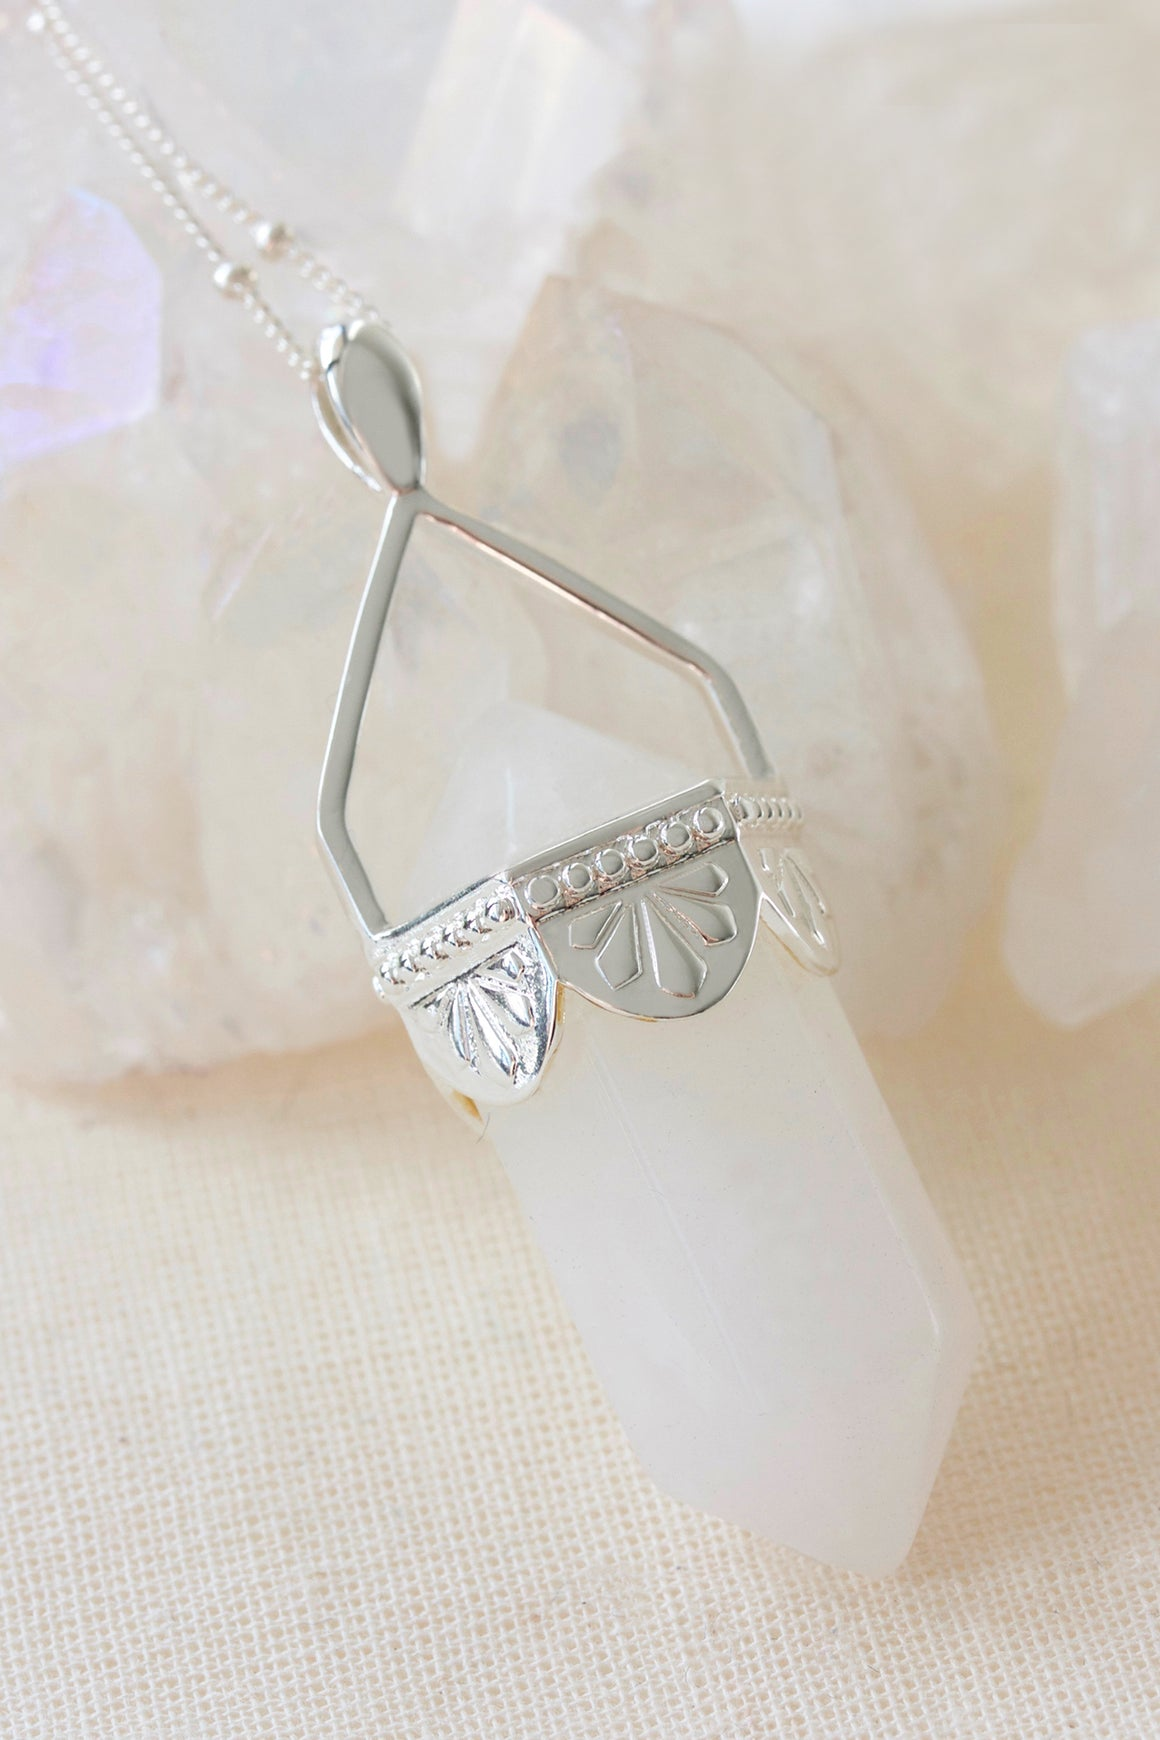 Clear Quartz Pendulum Necklace - Silver